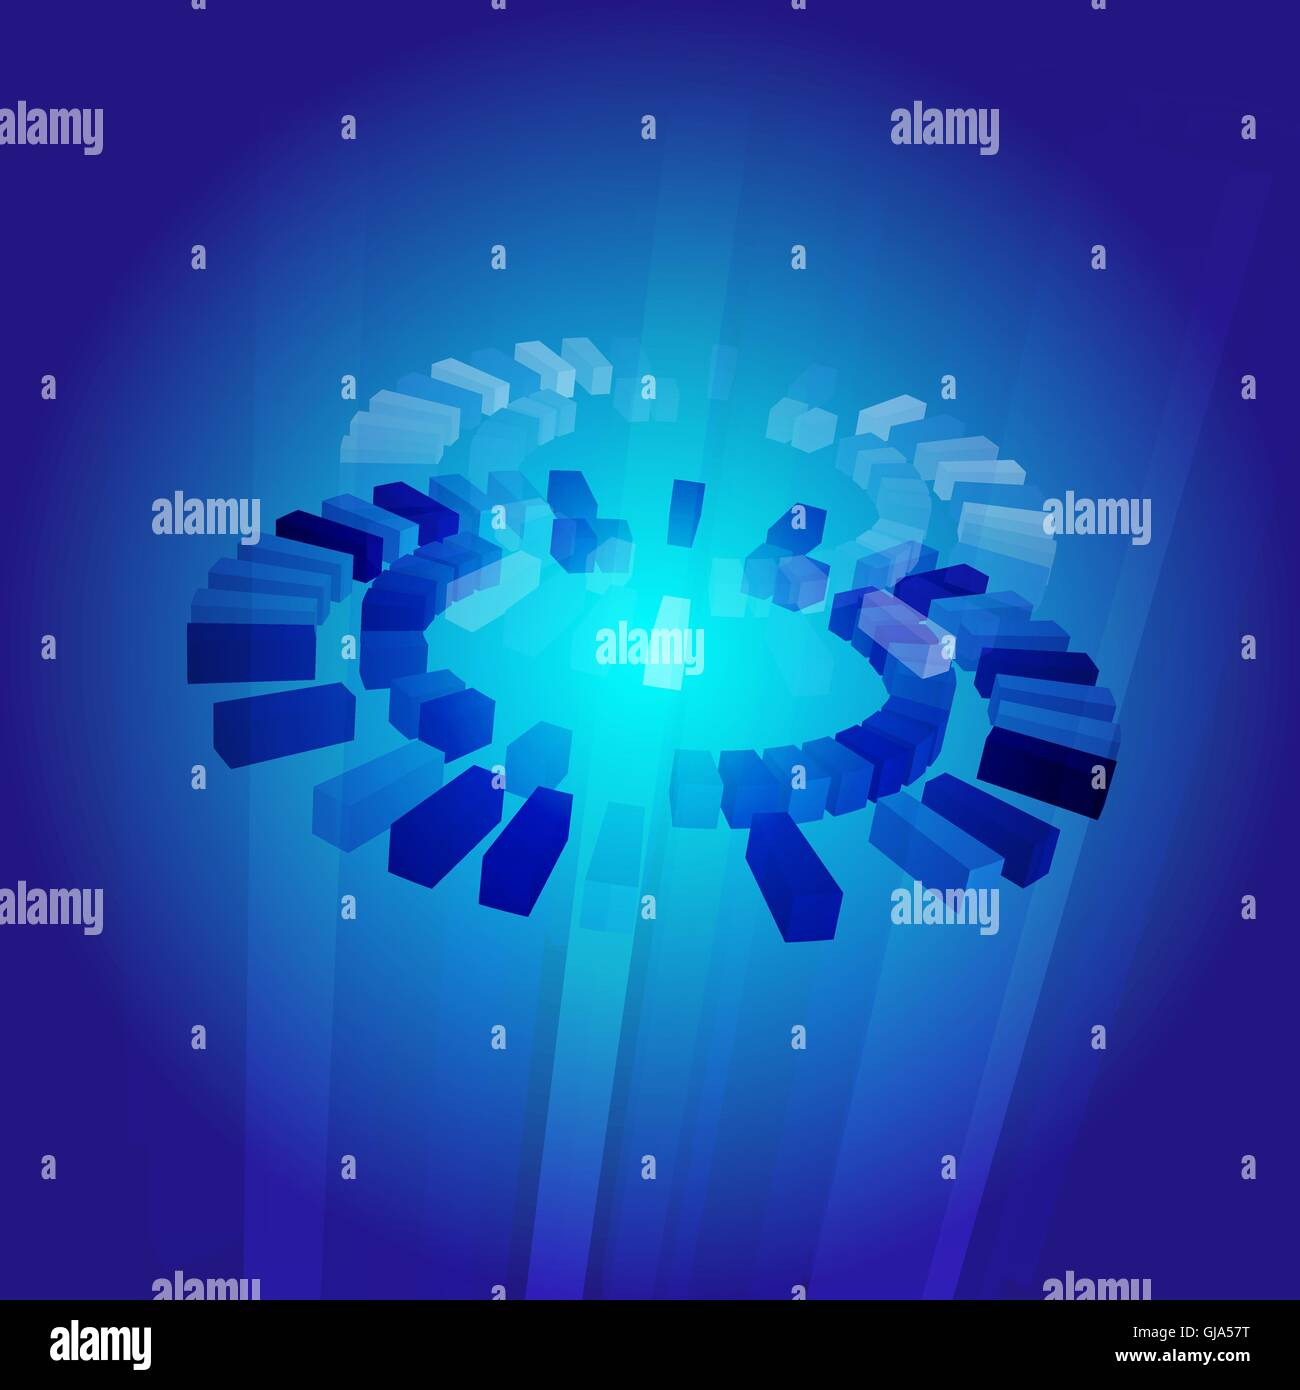 Abstract blue core illustration - Stock Vector